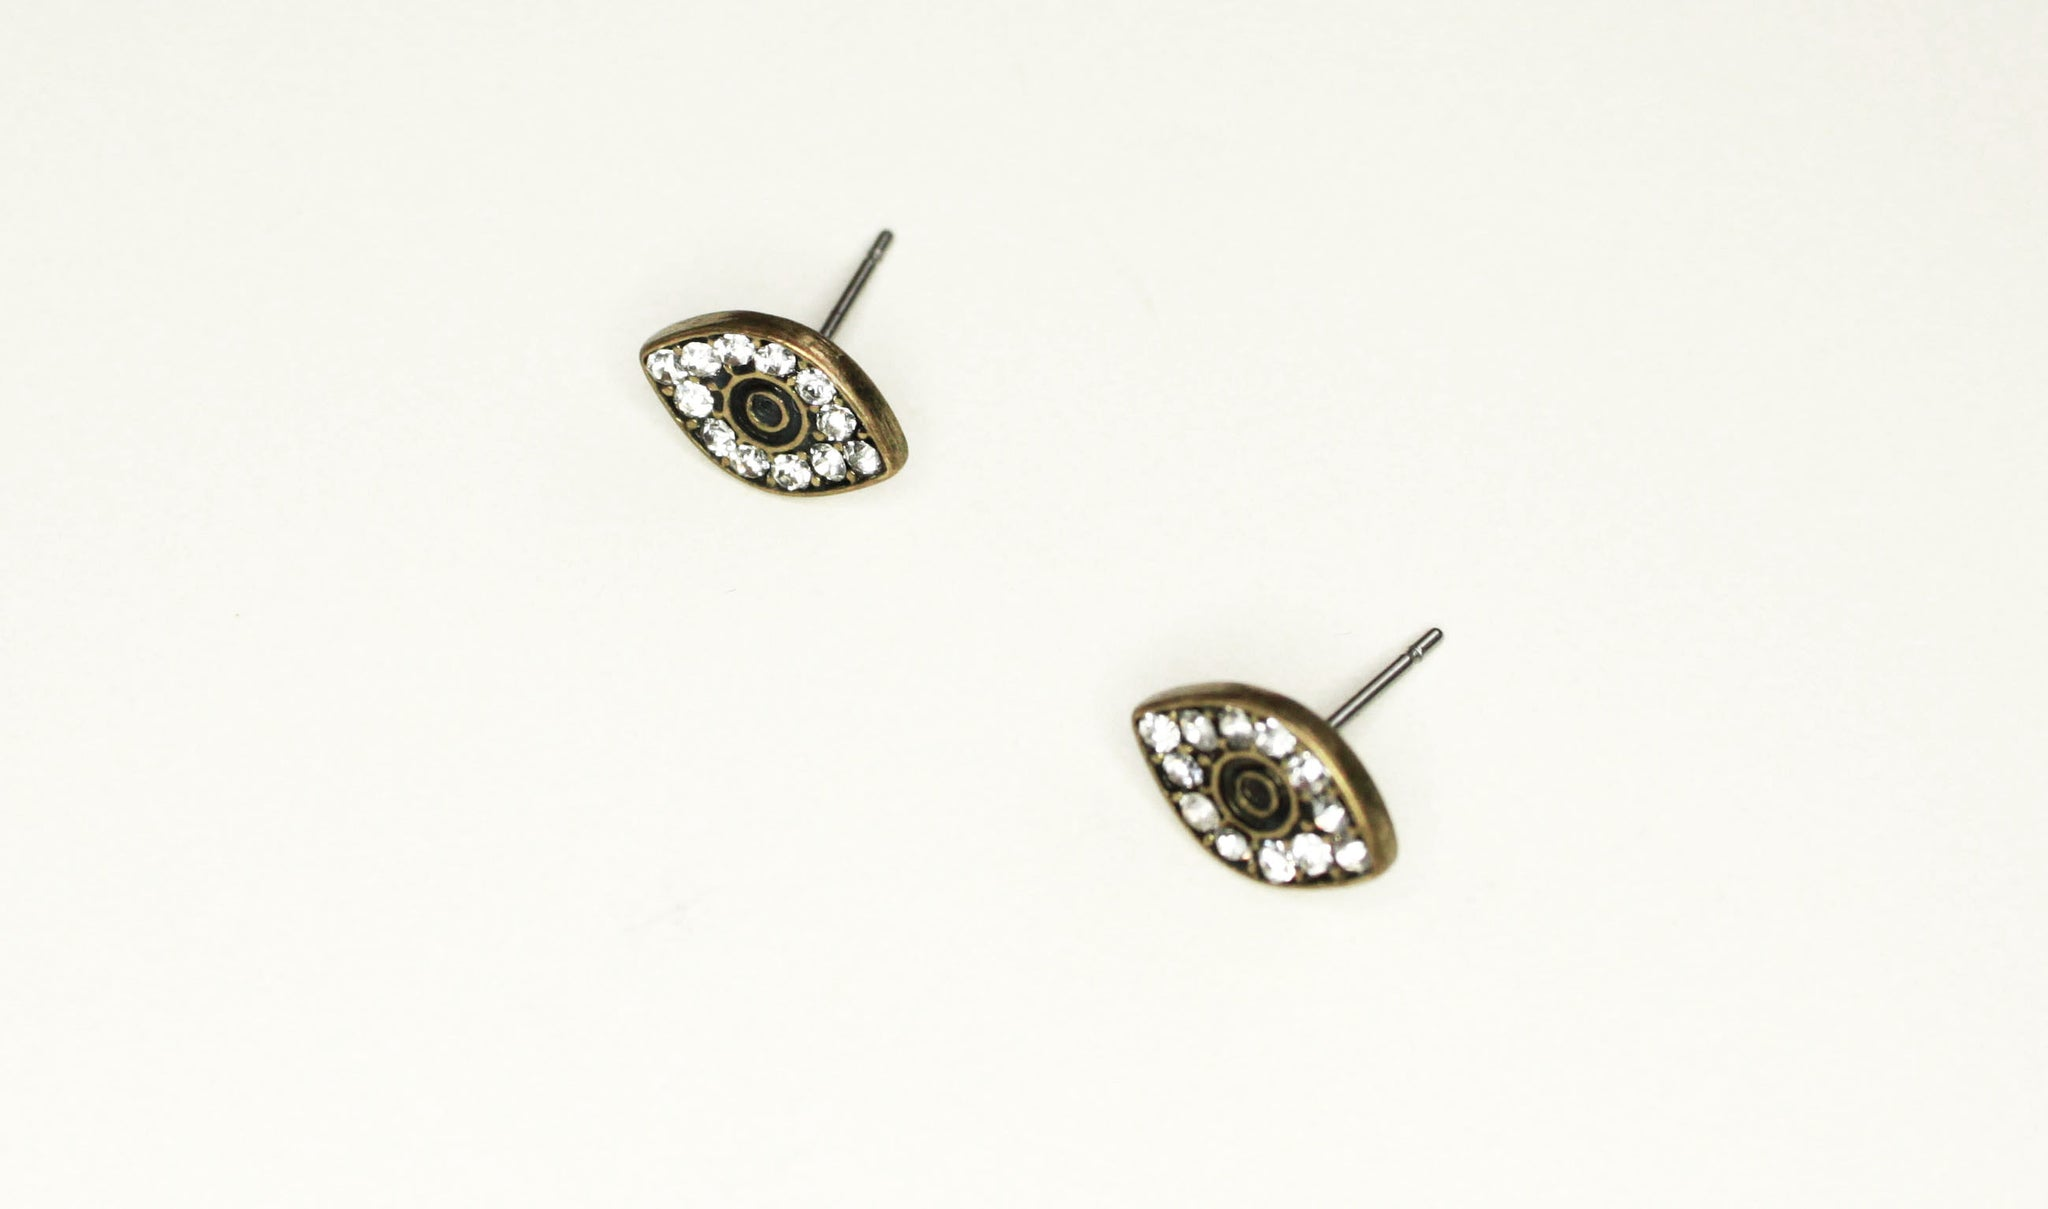 Buri Nazar Evil Eye Earrings